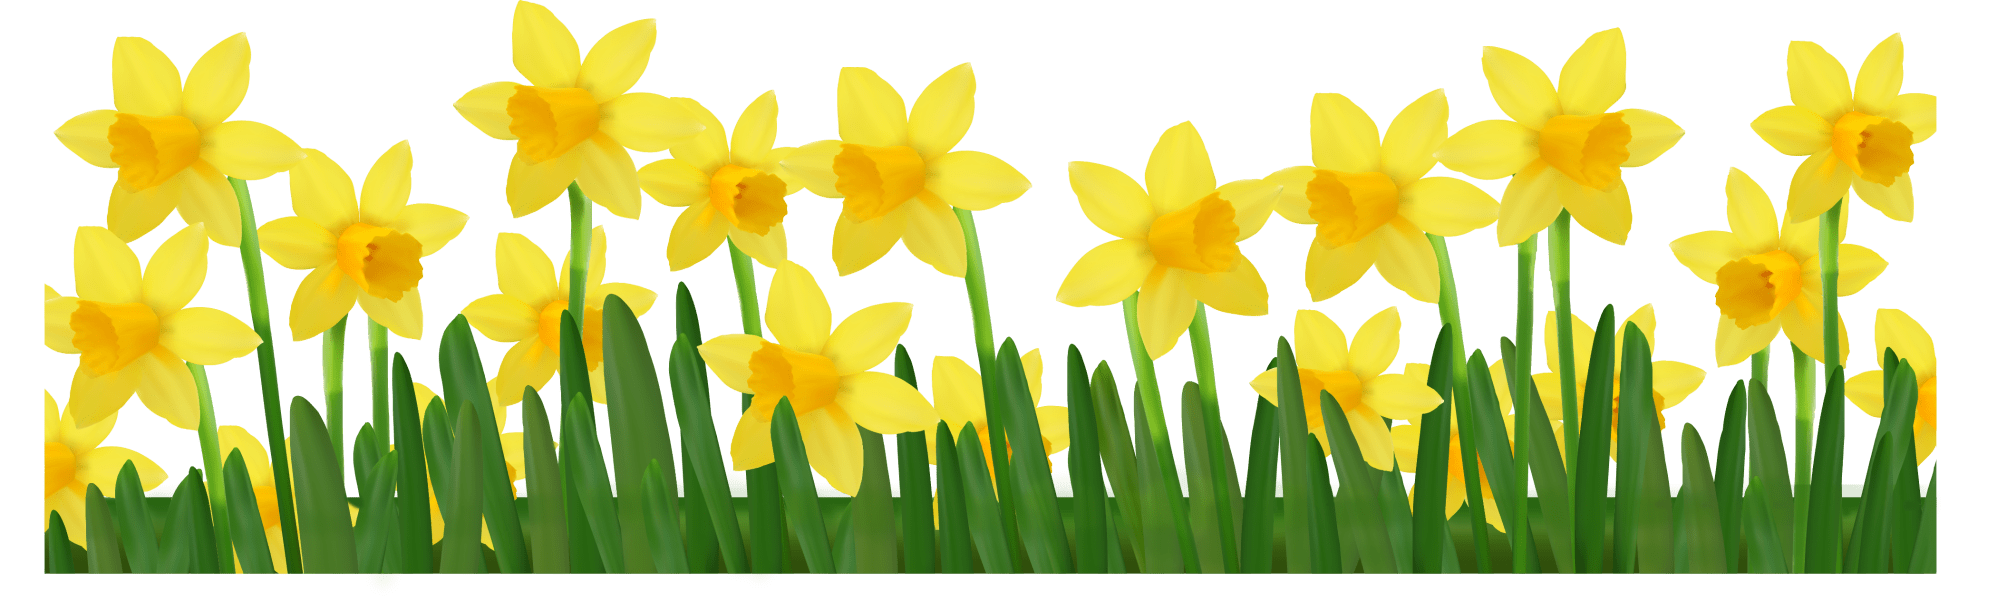 hight resolution of grass with daffodils png clipart picture